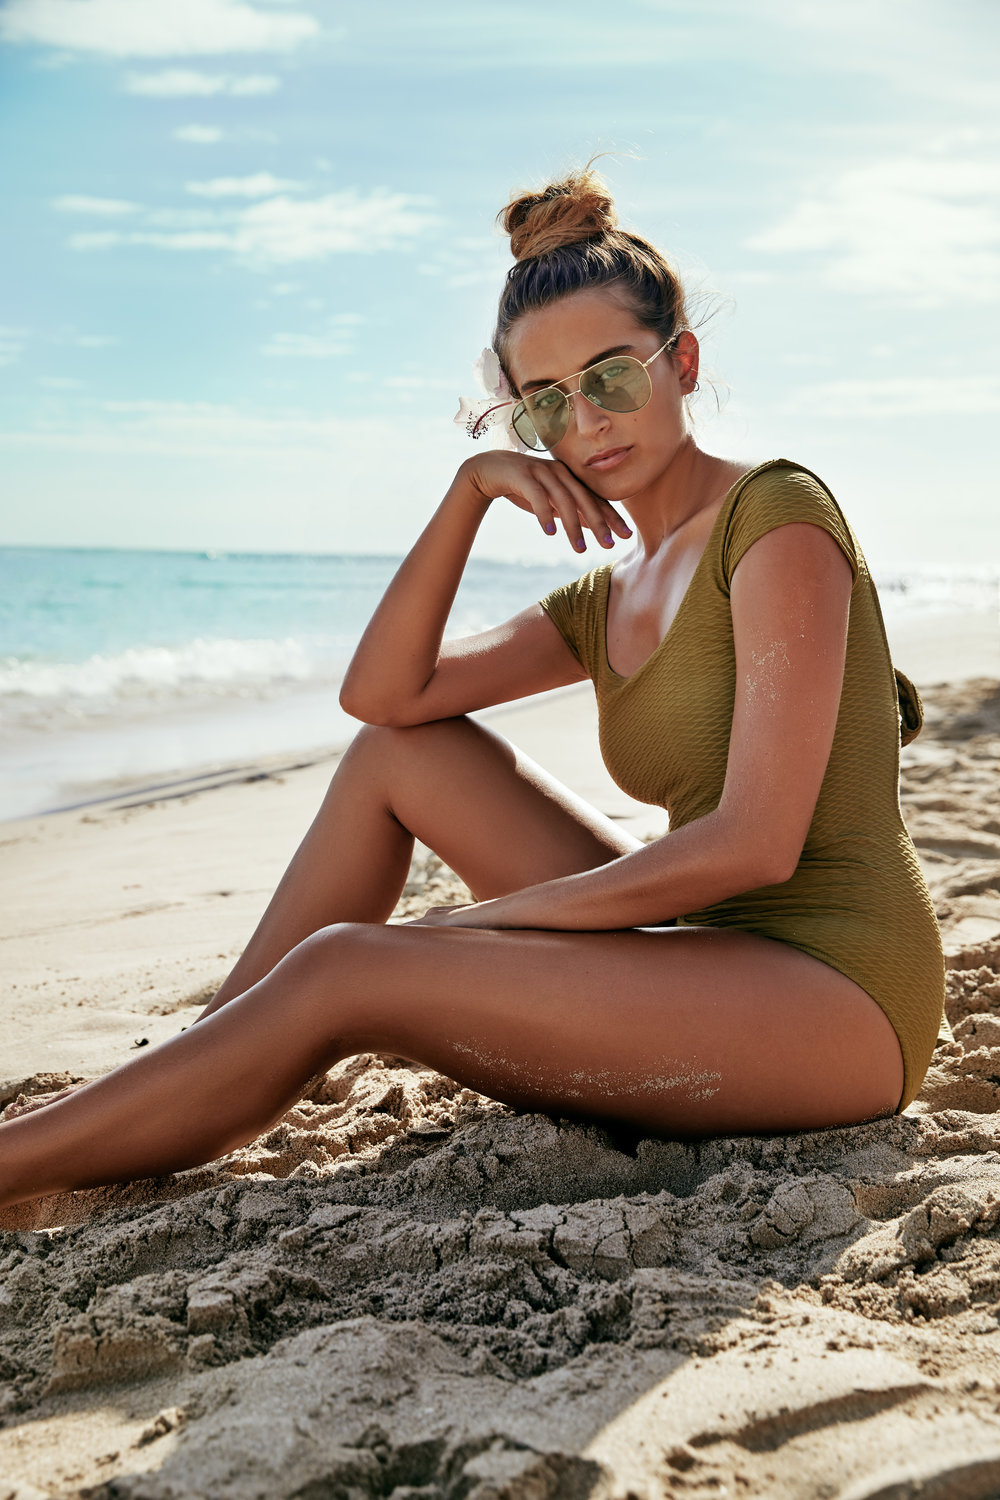 Model wears:  ST Tropez  Self Tan Extra Dark Bronzing Mousse,  Lonely  Connie swimsuit, $240 and  Gucci  Aviator sunglasses, $615. Photographed on location at Waikiki beach, Hawaii.